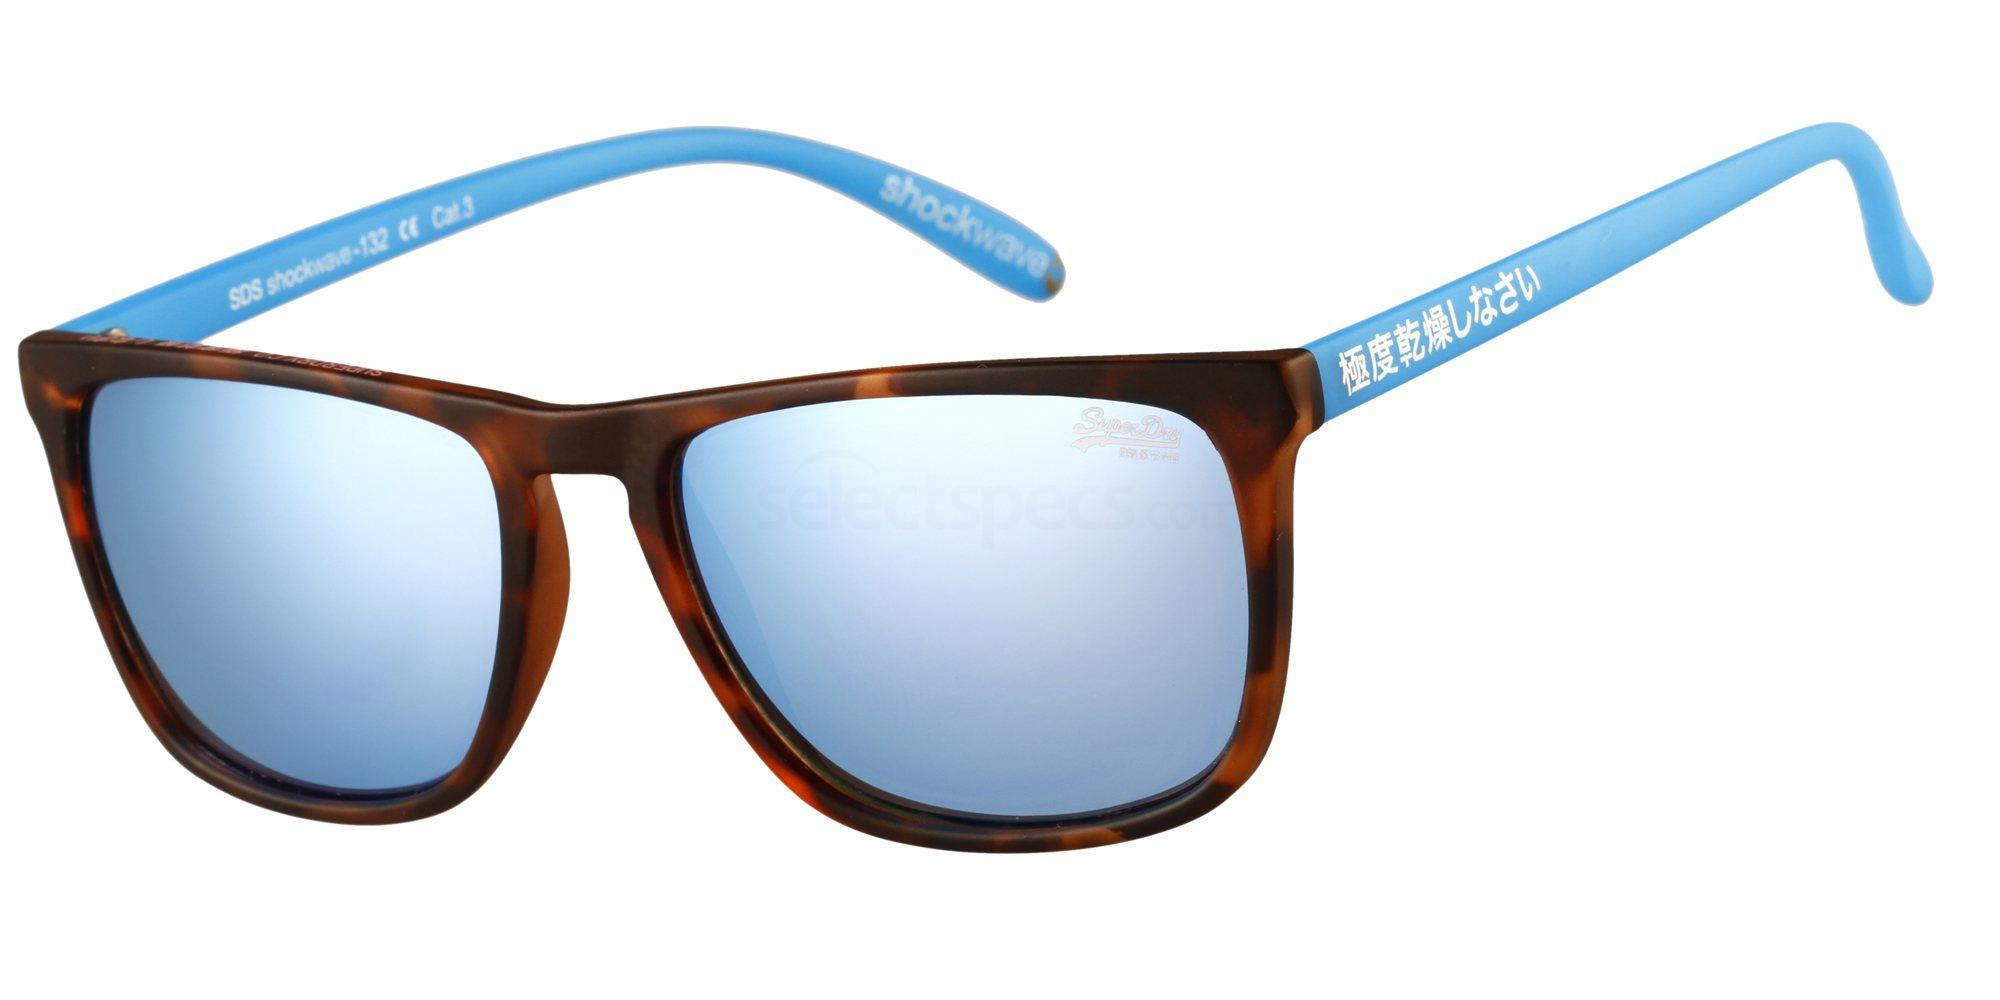 105 SDS-SHOCKWAVE ST Sunglasses, Superdry